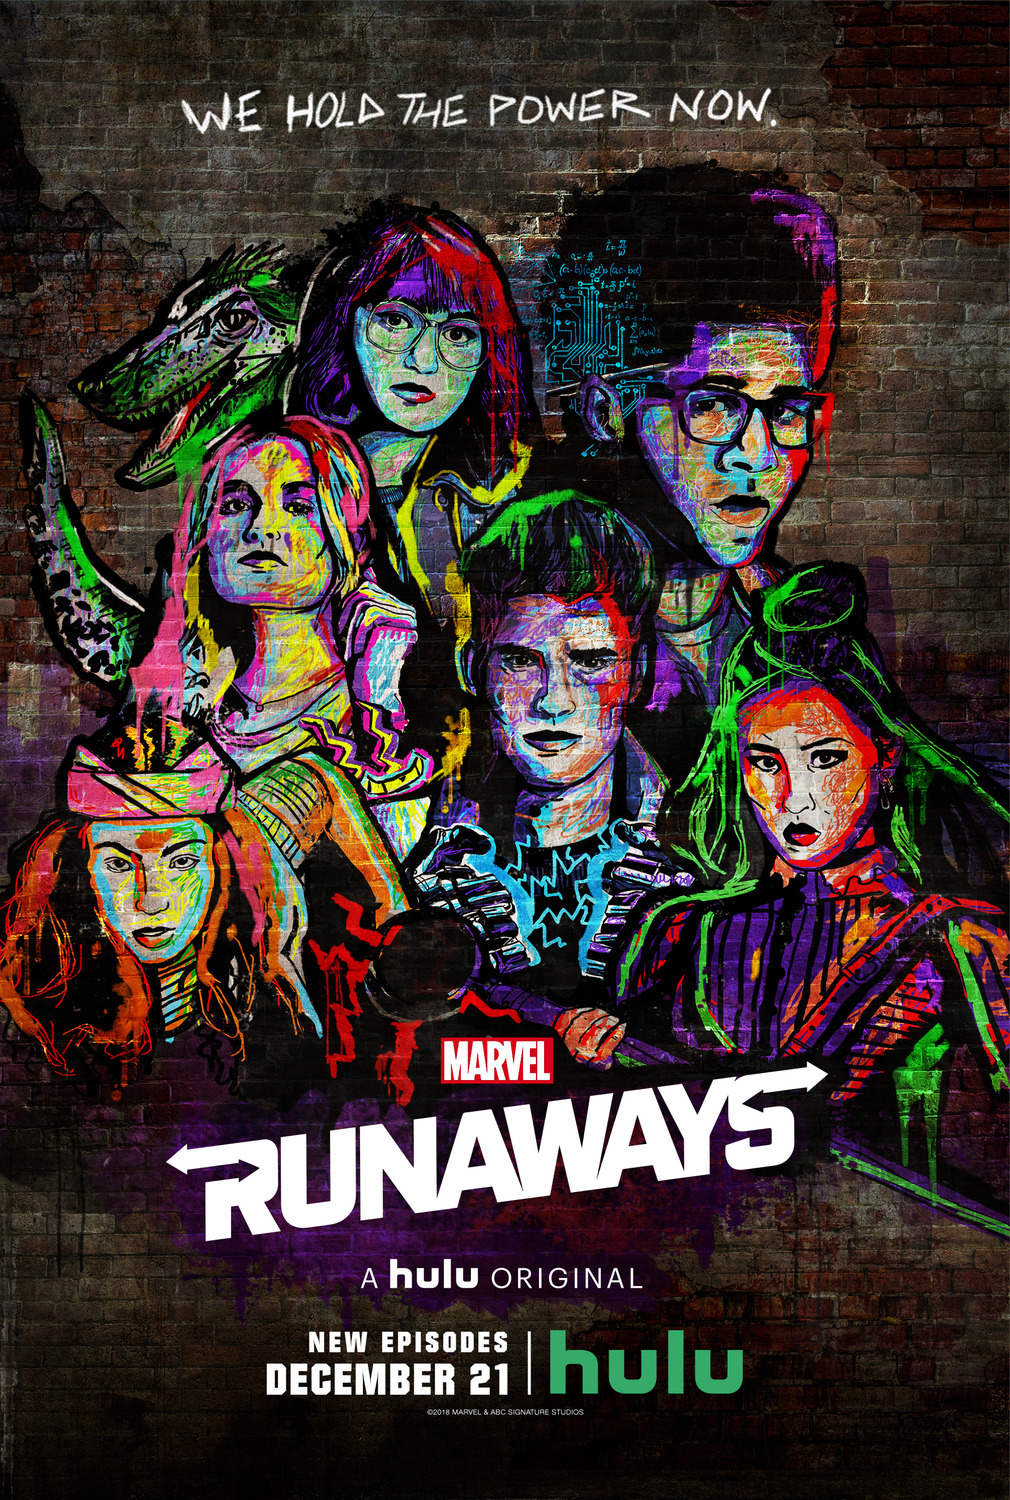 Runaways (TV Series 2017– ) - IMDb